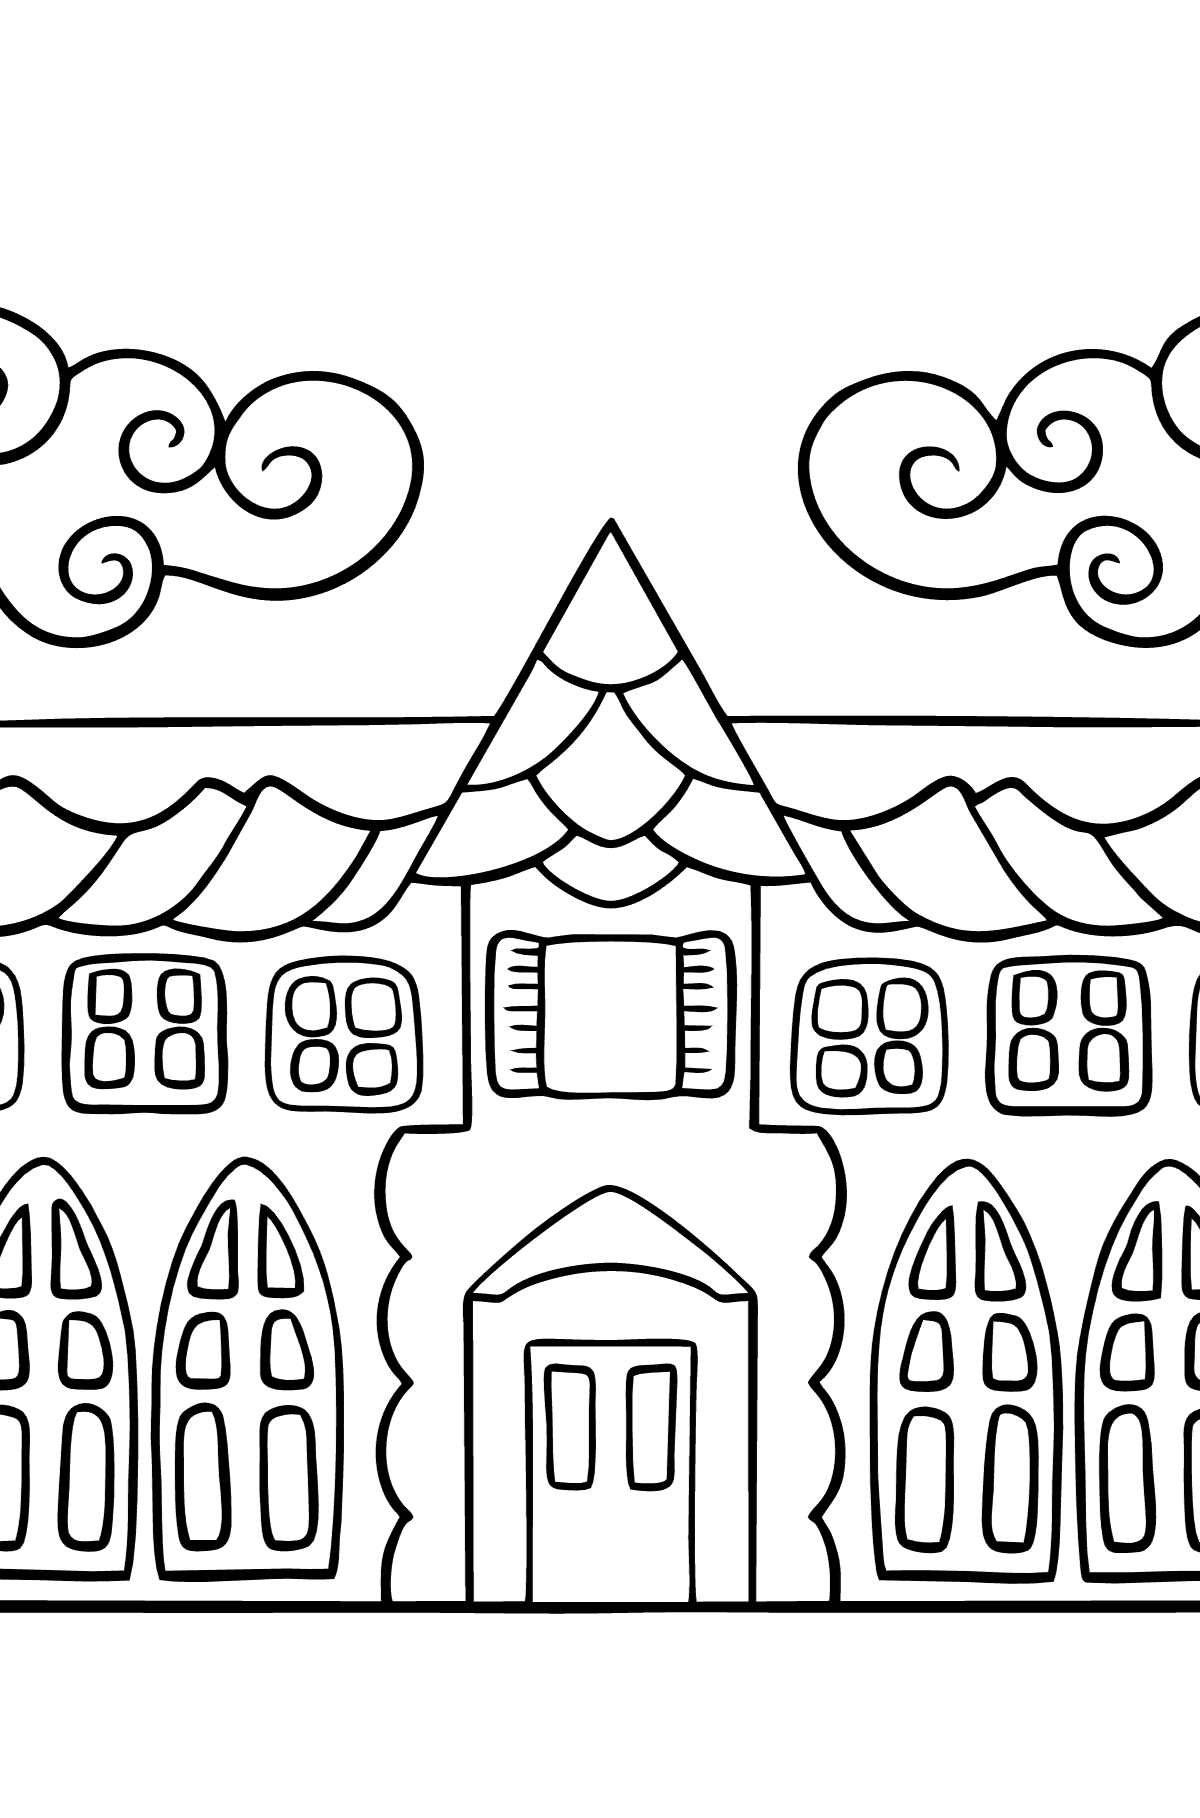 Simple Coloring Page - A House in an Enchanted Kingdom for Children